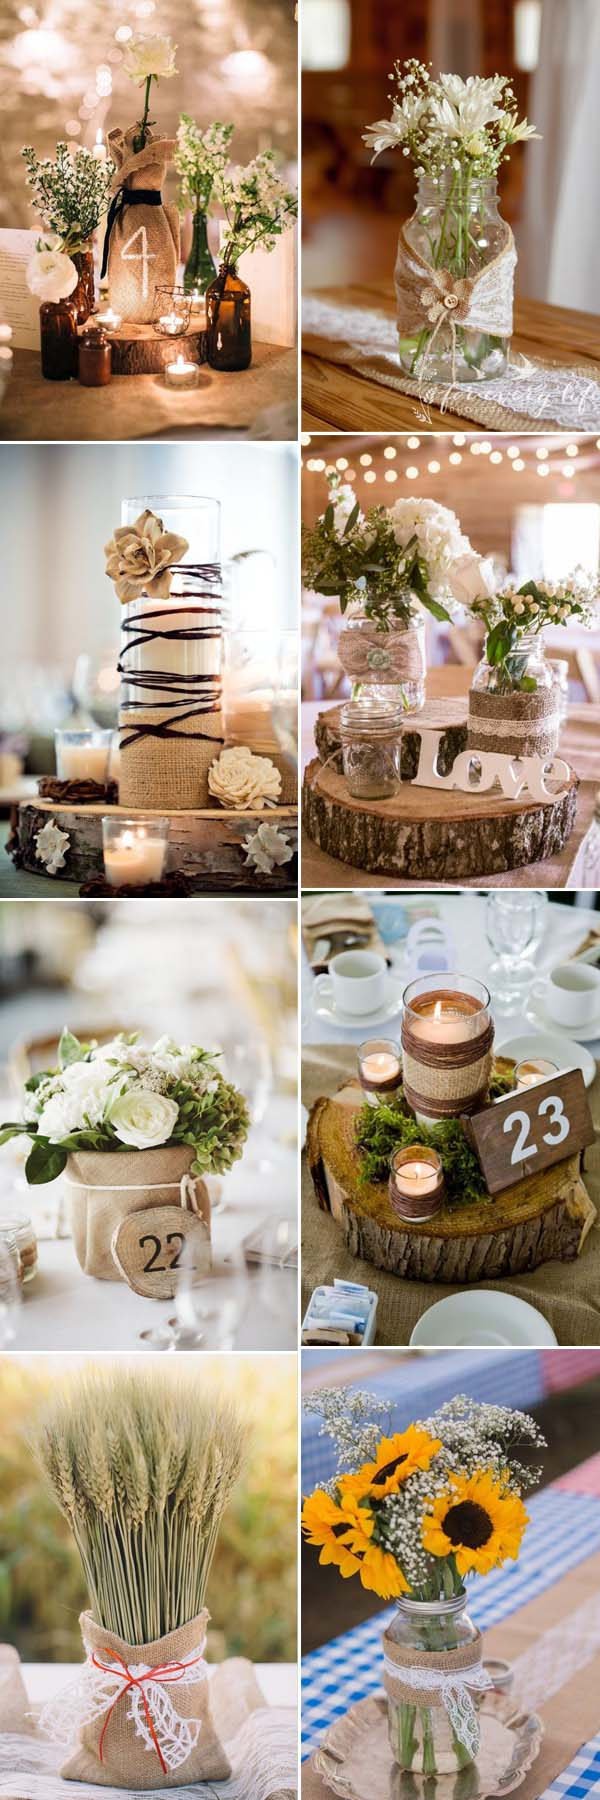 Rustic Wedding Diy The Most Complete Burlap Rustic Wedding Ideas For Your Inspiration